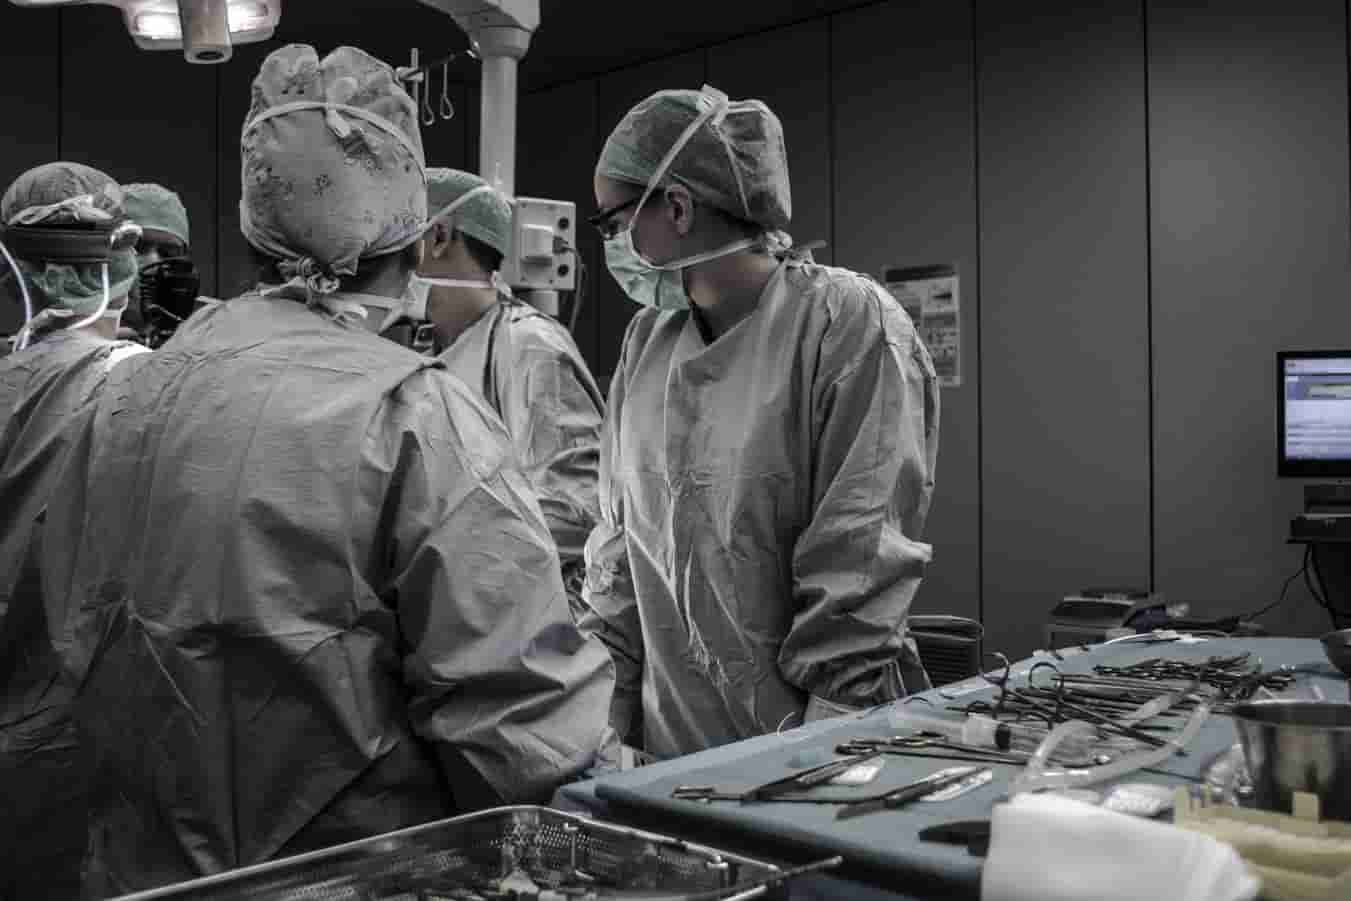 Image | surgeons in an operating room